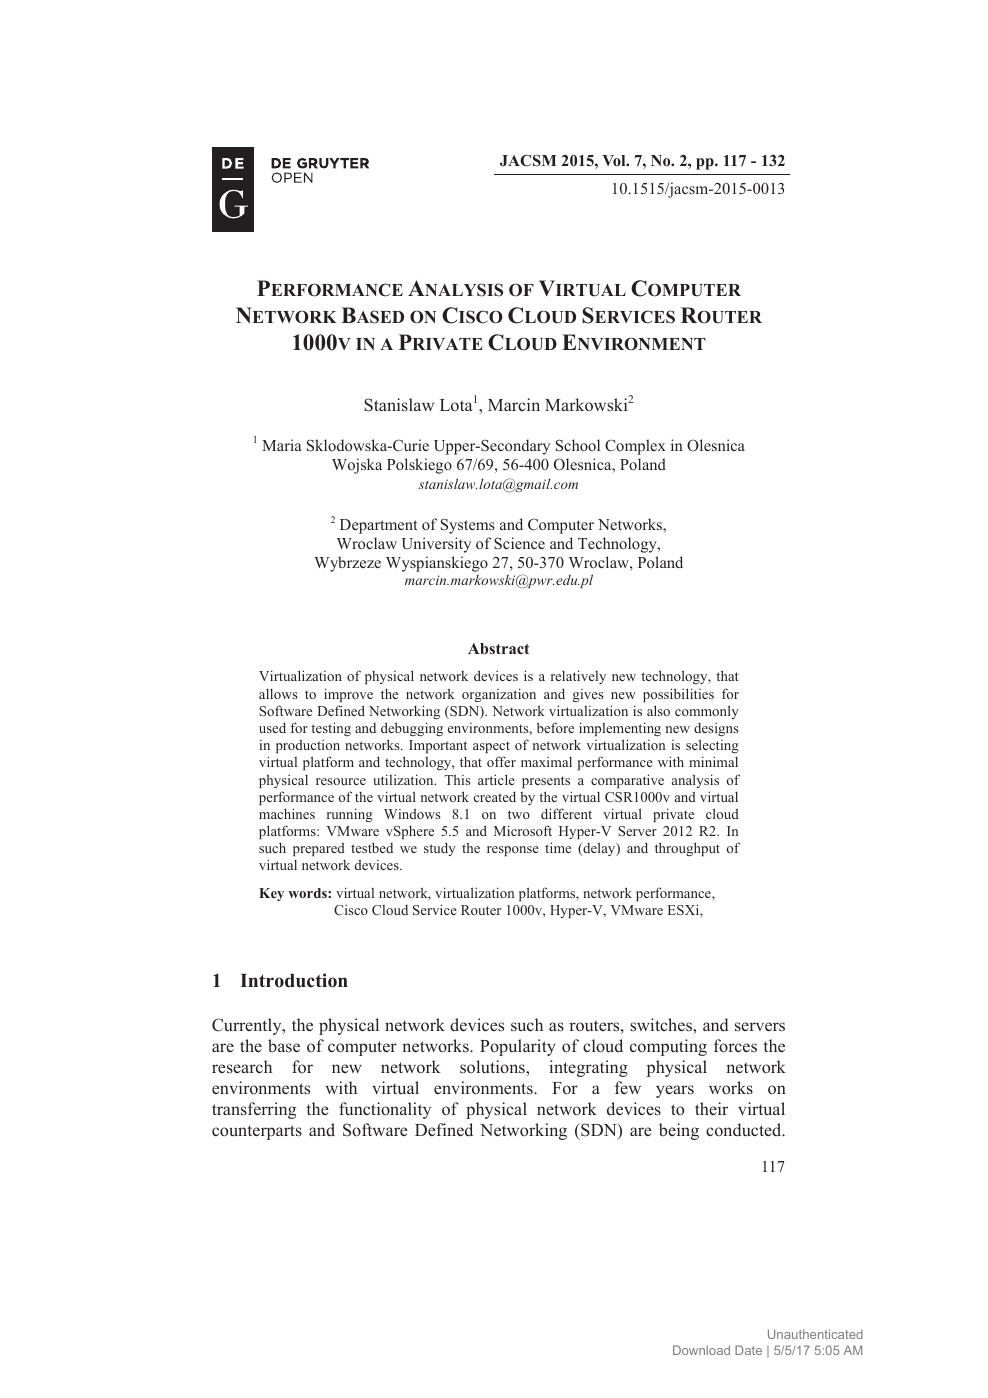 Performance Analysis of Virtual Computer Network Based on